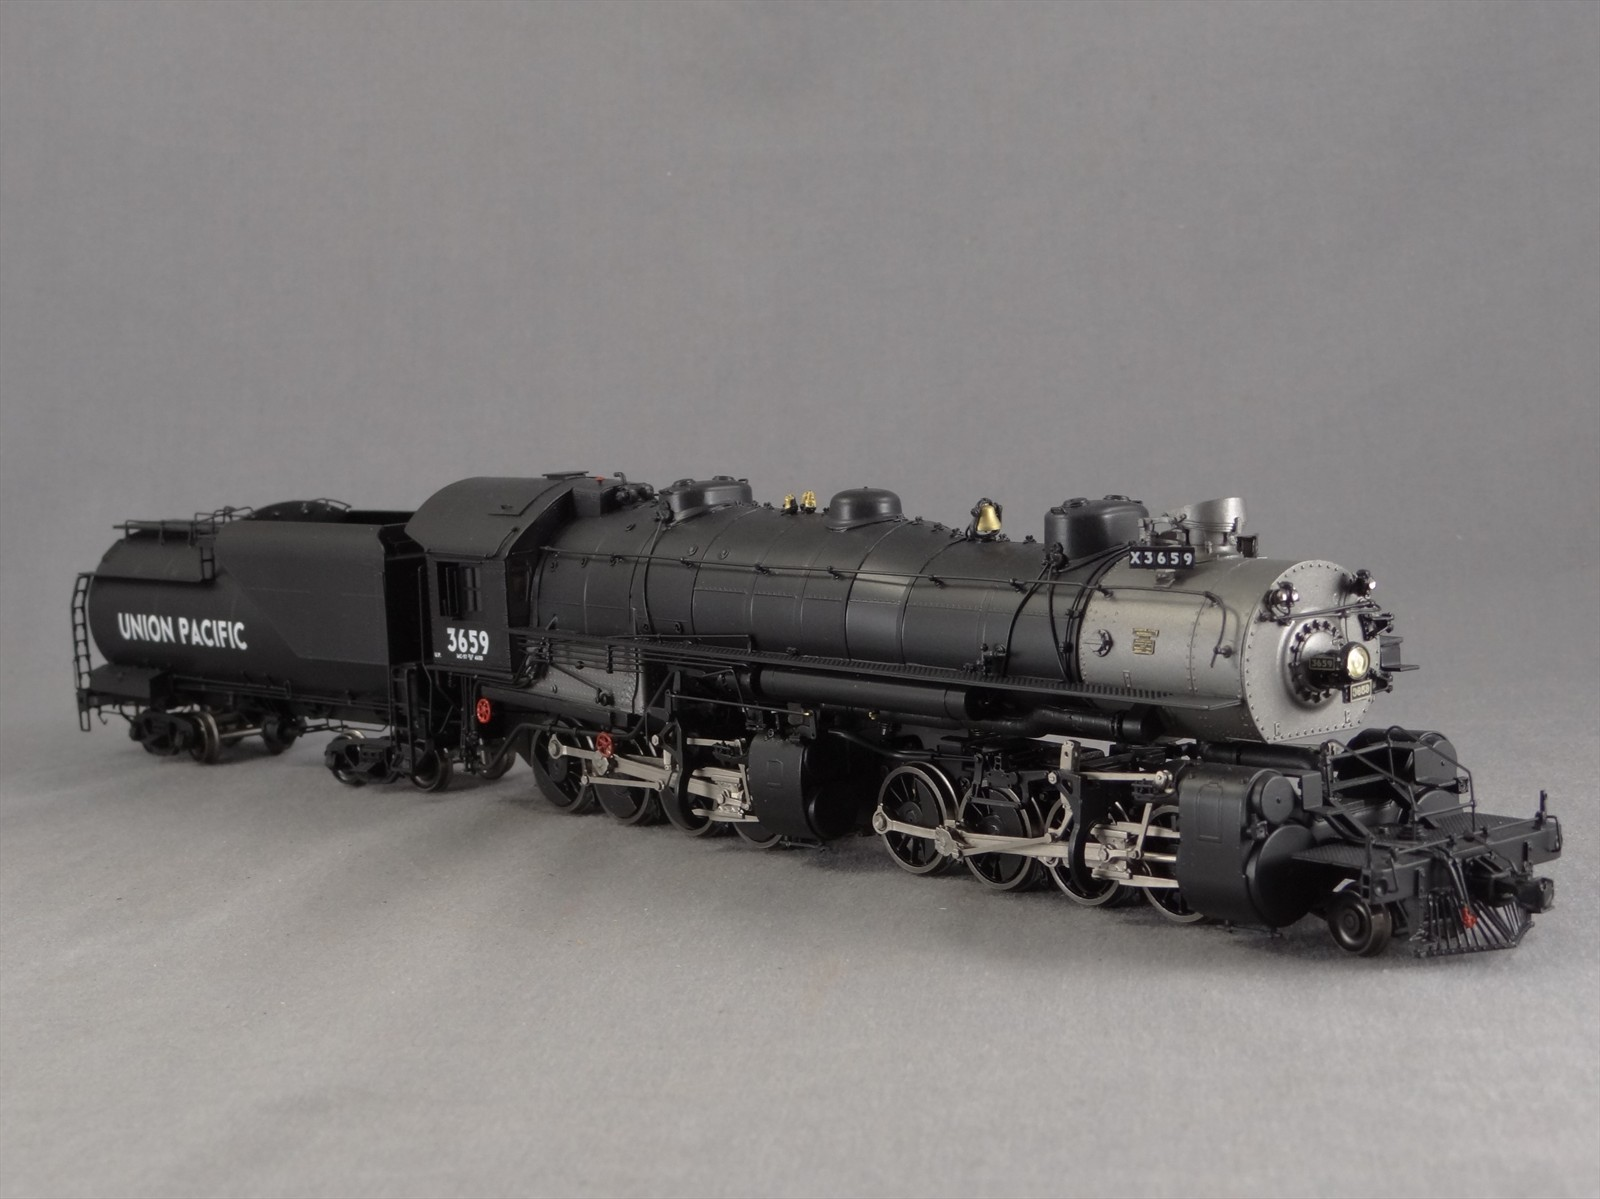 Overland 4539.1 - MC-6, 2-8-8-0 'Bull Moose', Union Pacific Nr.3659, 98-99 release.01